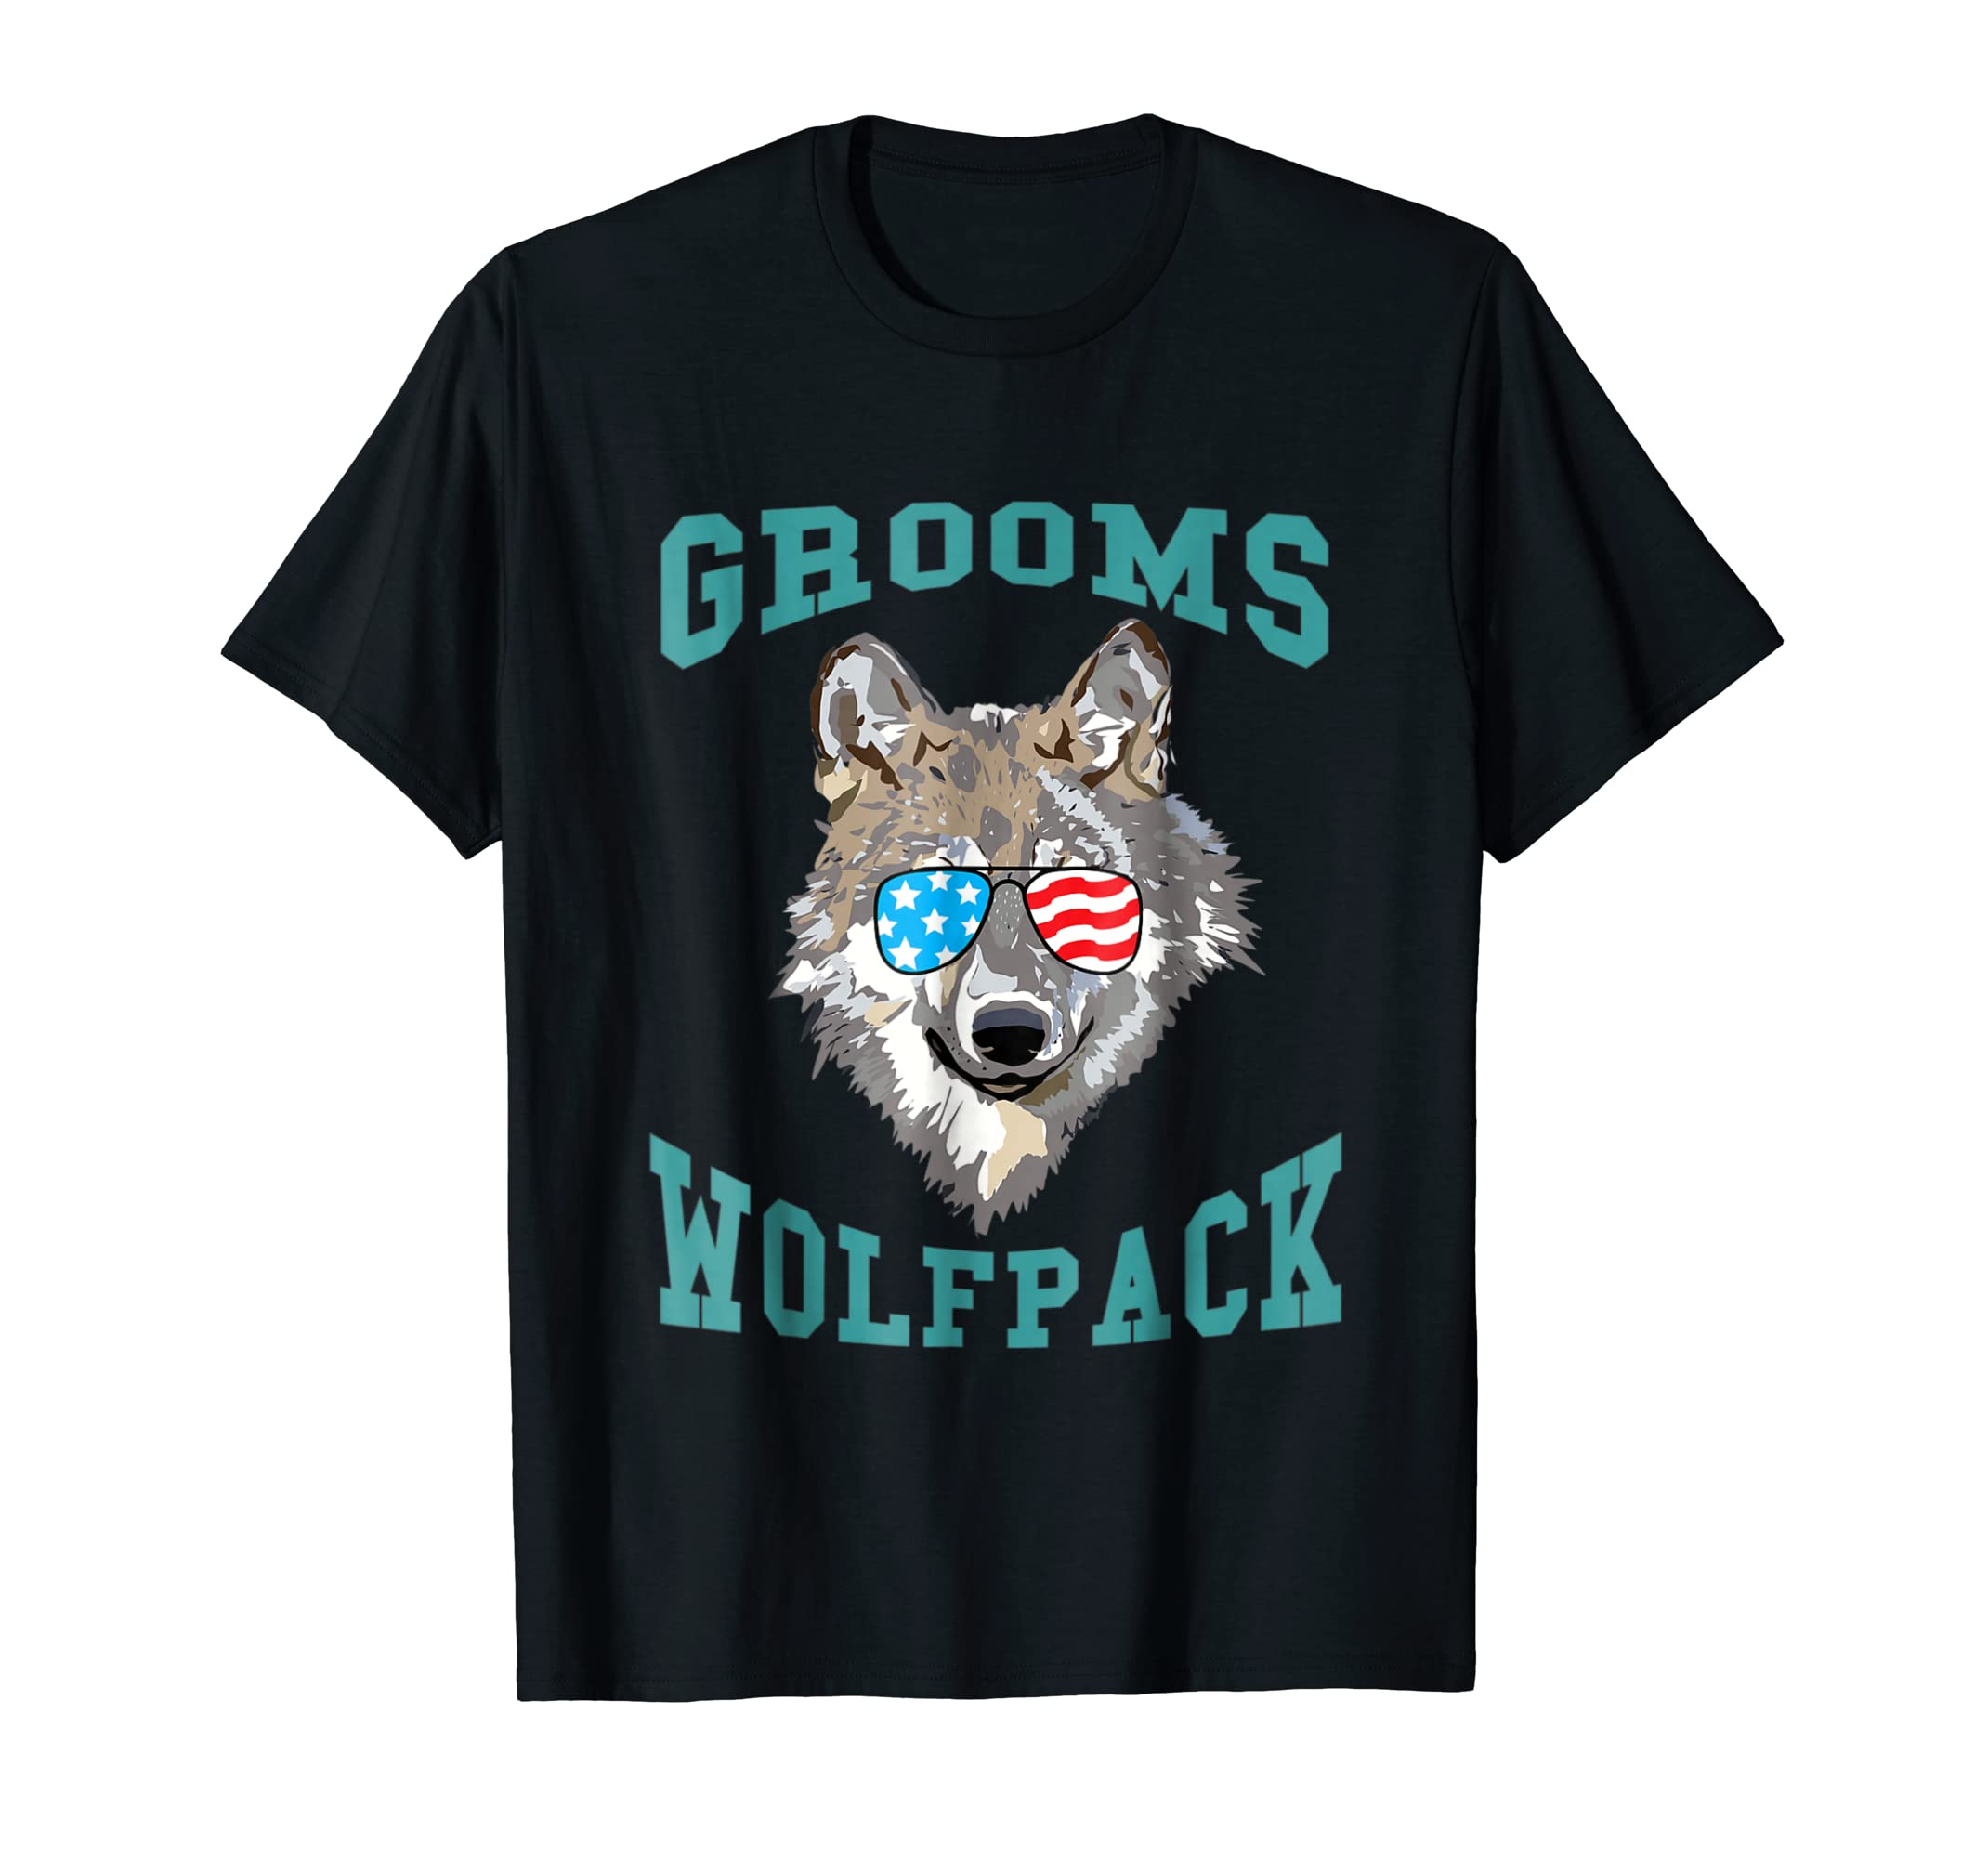 Grooms Wolfpack Bachelor Party Shirts Groomsmen Squad Gift-Men's T-Shirt-Black